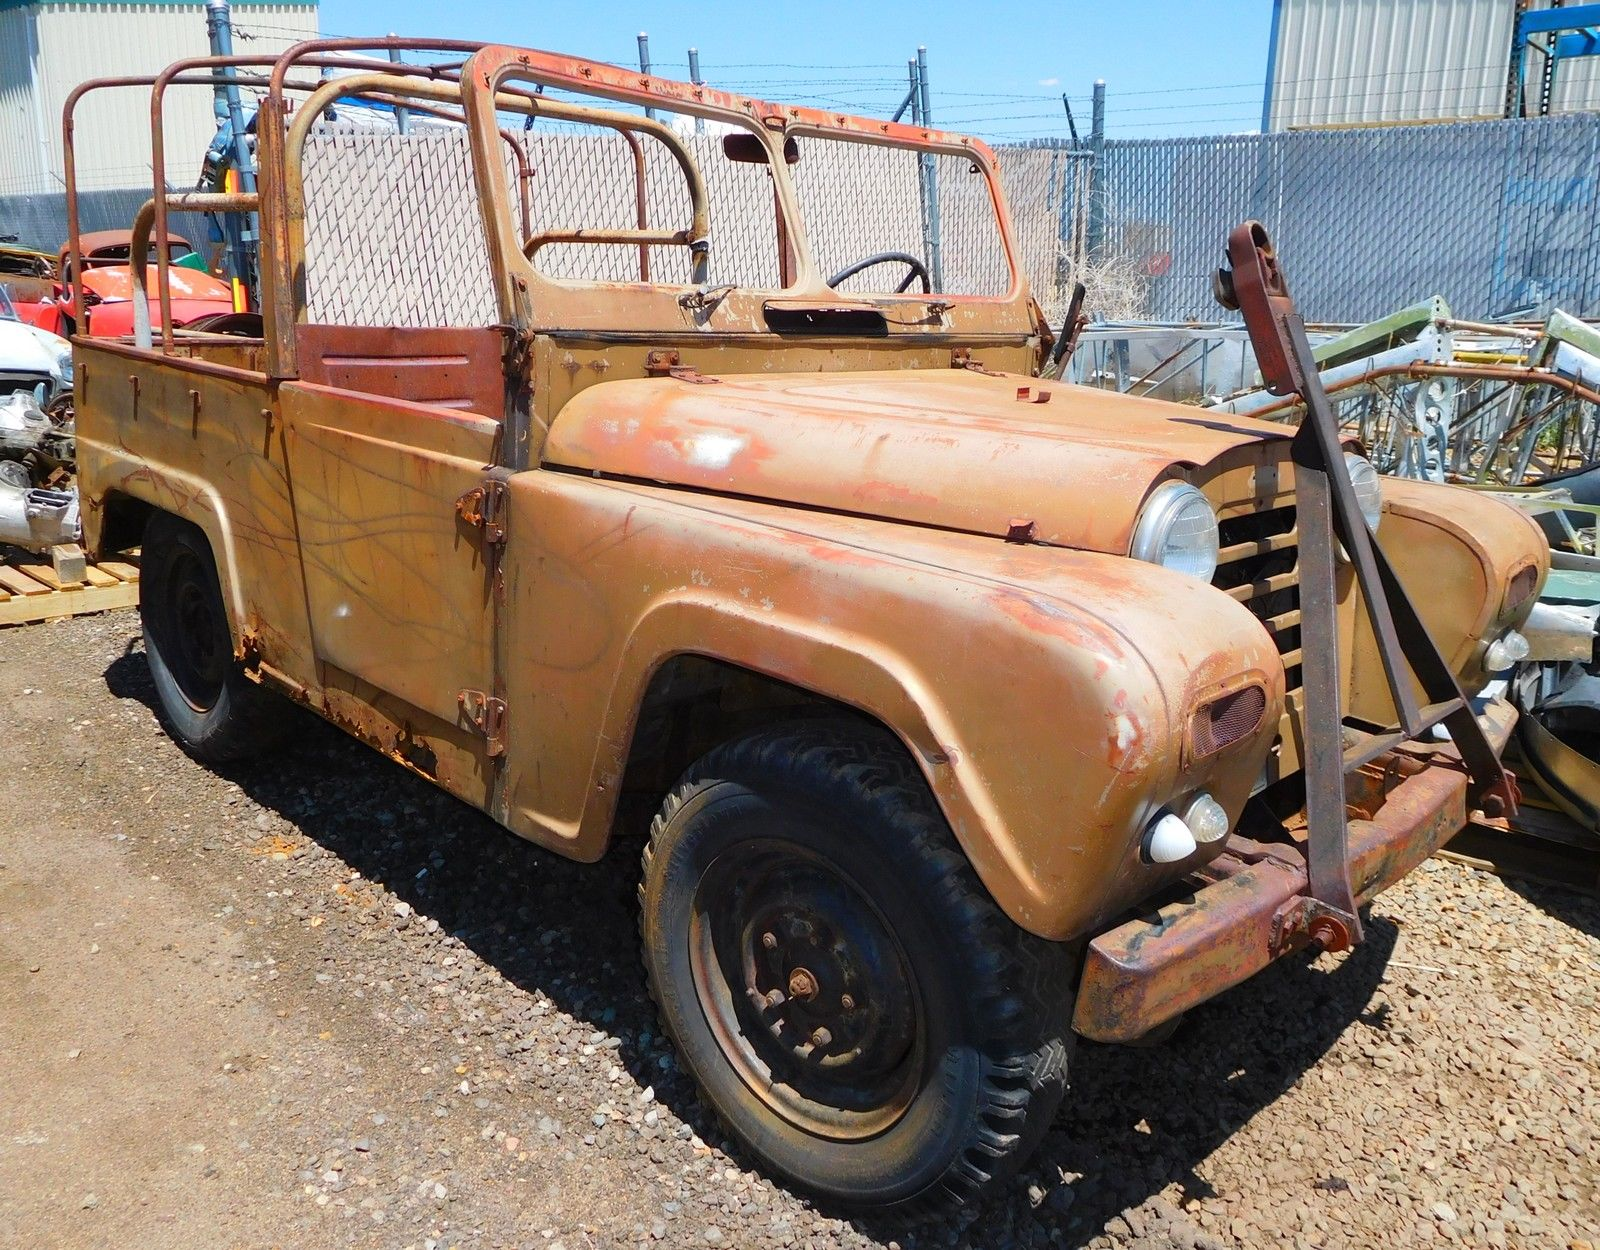 There is some rust in this Austin Gipsy but it looks repairable. (Picture courtesy eBay).